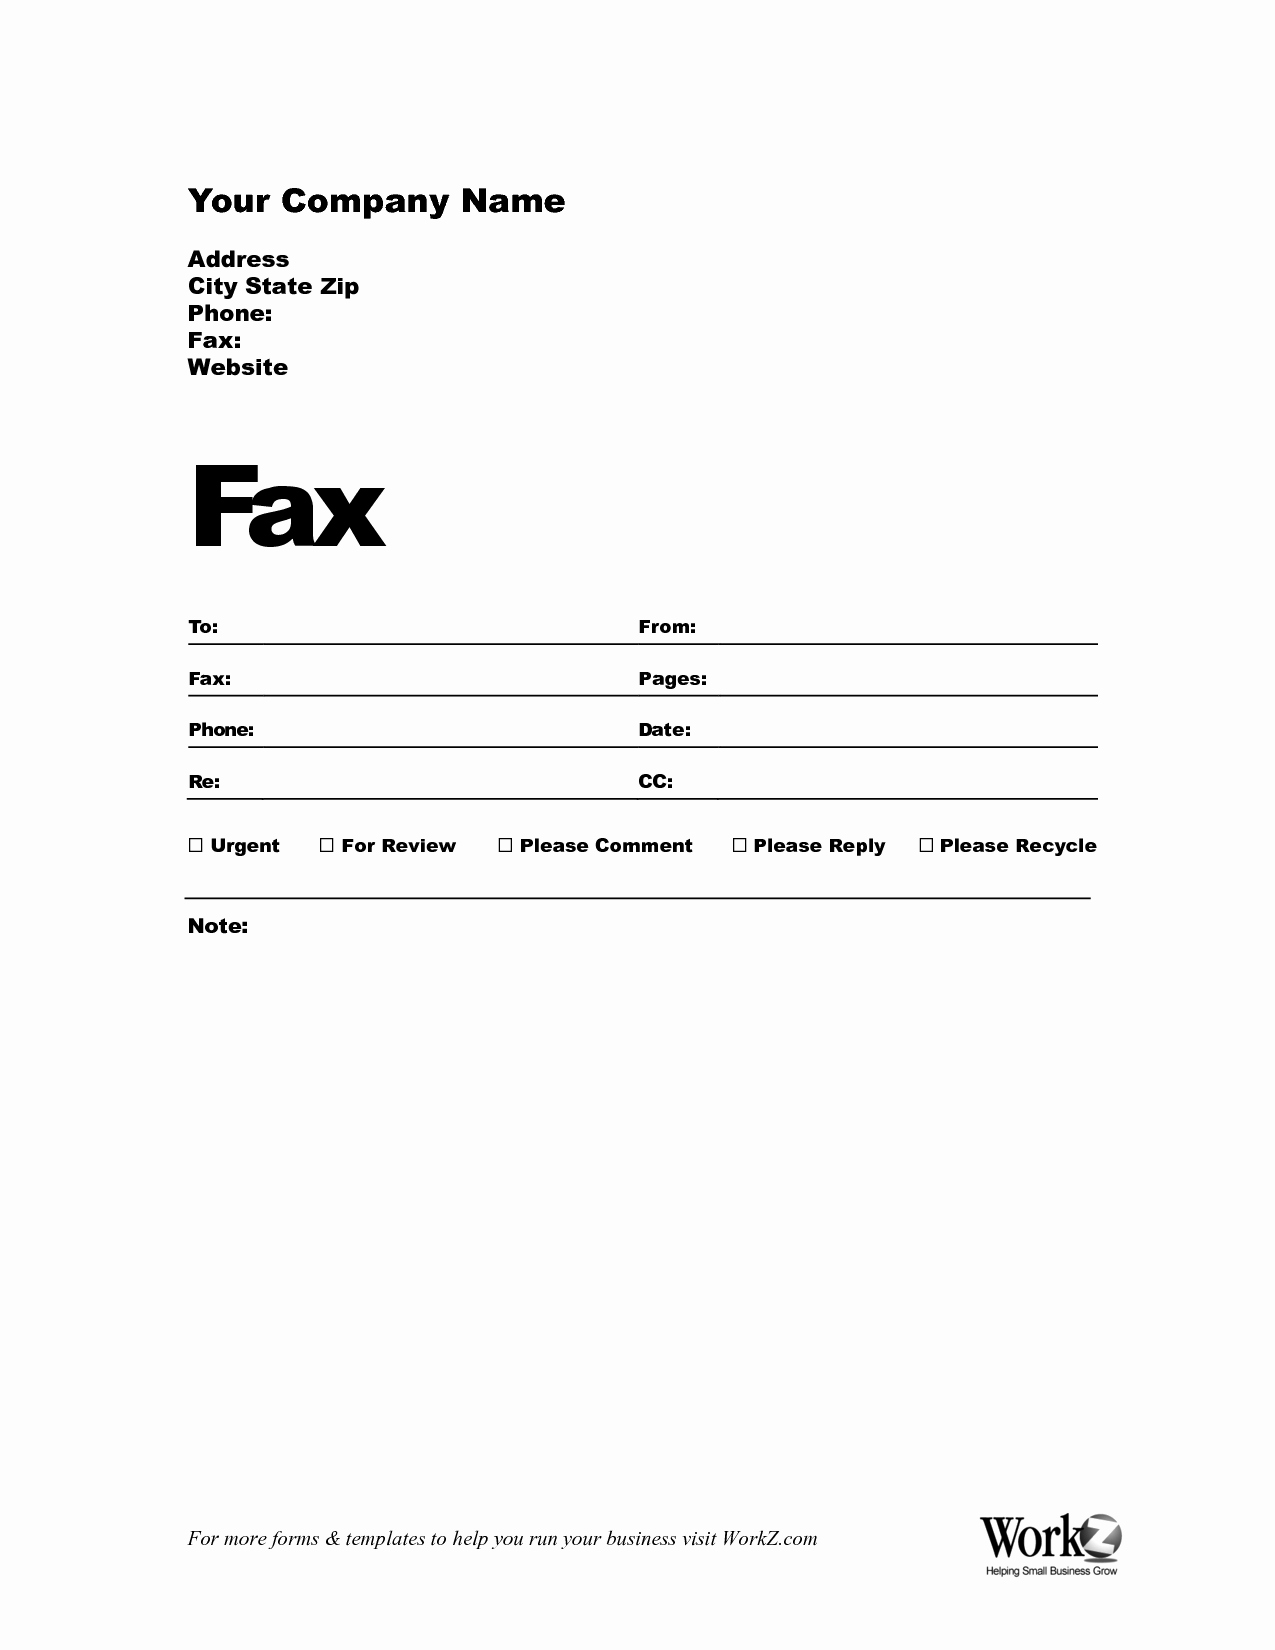 Free Cover Letter Templates Pdf Luxury Free Fax Cover Sheet Template Bamboodownunder